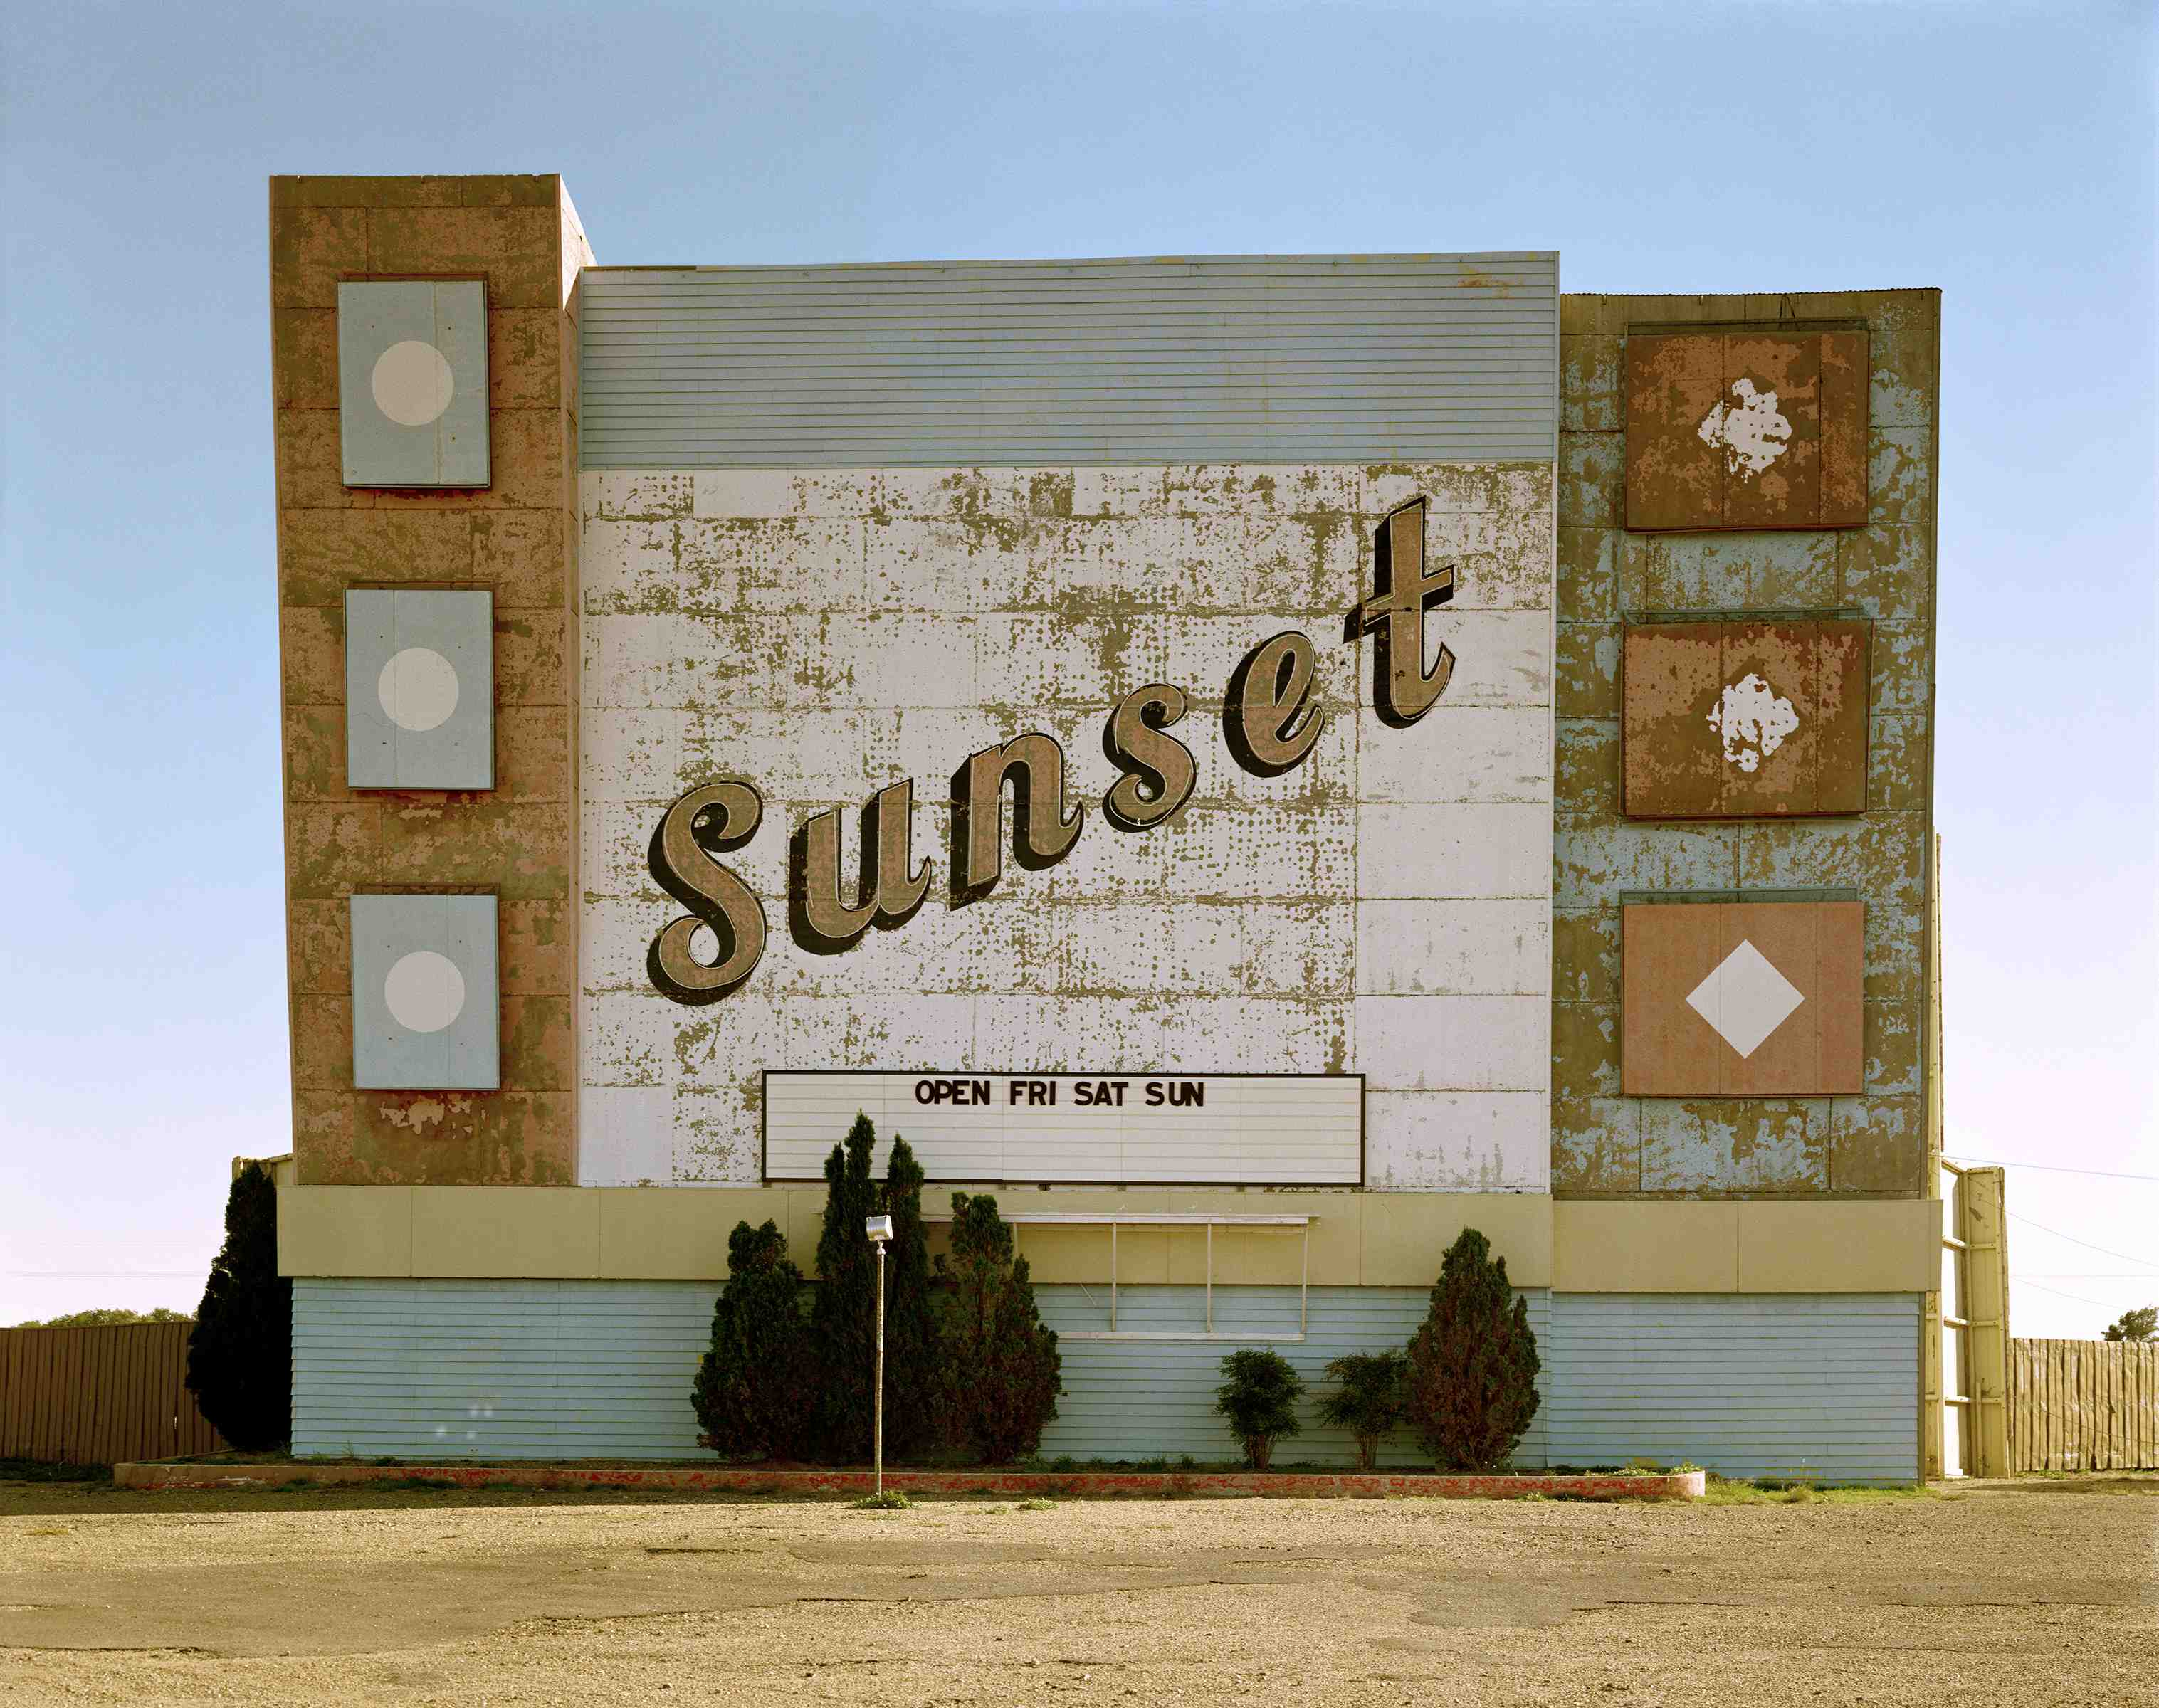 West 9th Avenue, Amarillo, Texas, October 2, 1974. The Museum of Modern Art, New York. Acquired through the generosity of an anonymous donor. © 2017 Stephen Shore